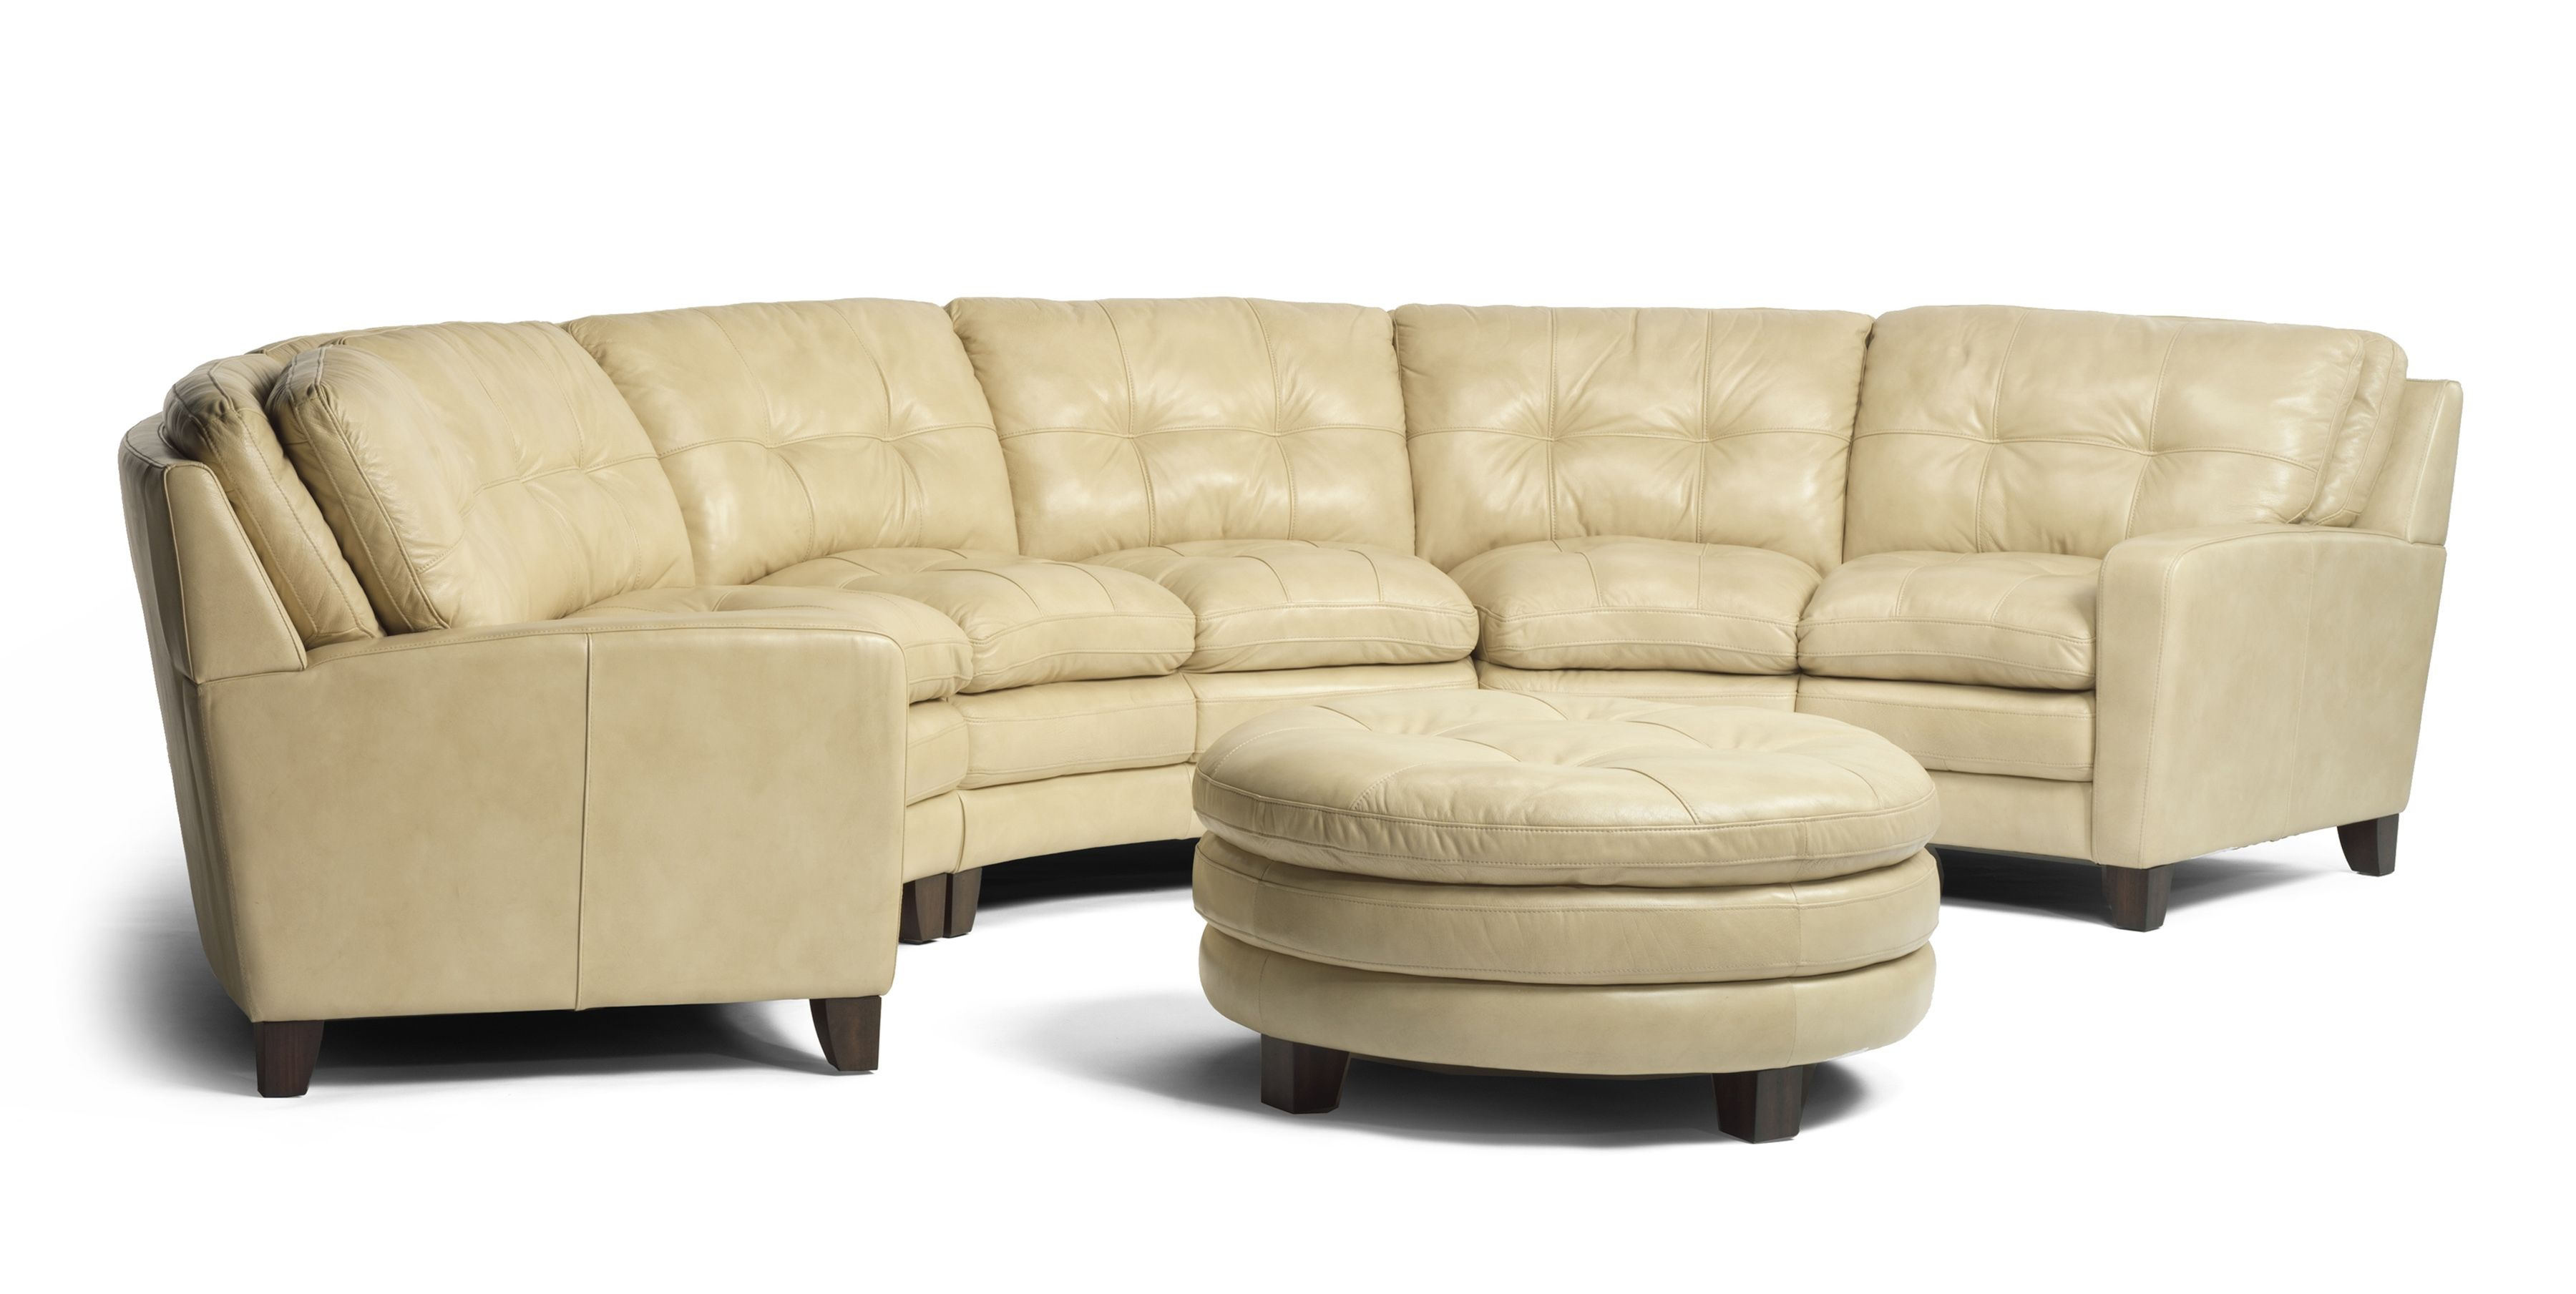 Gorgeous Cream Leather Conversation Sofa Www Awfurniture - Sofa Creme